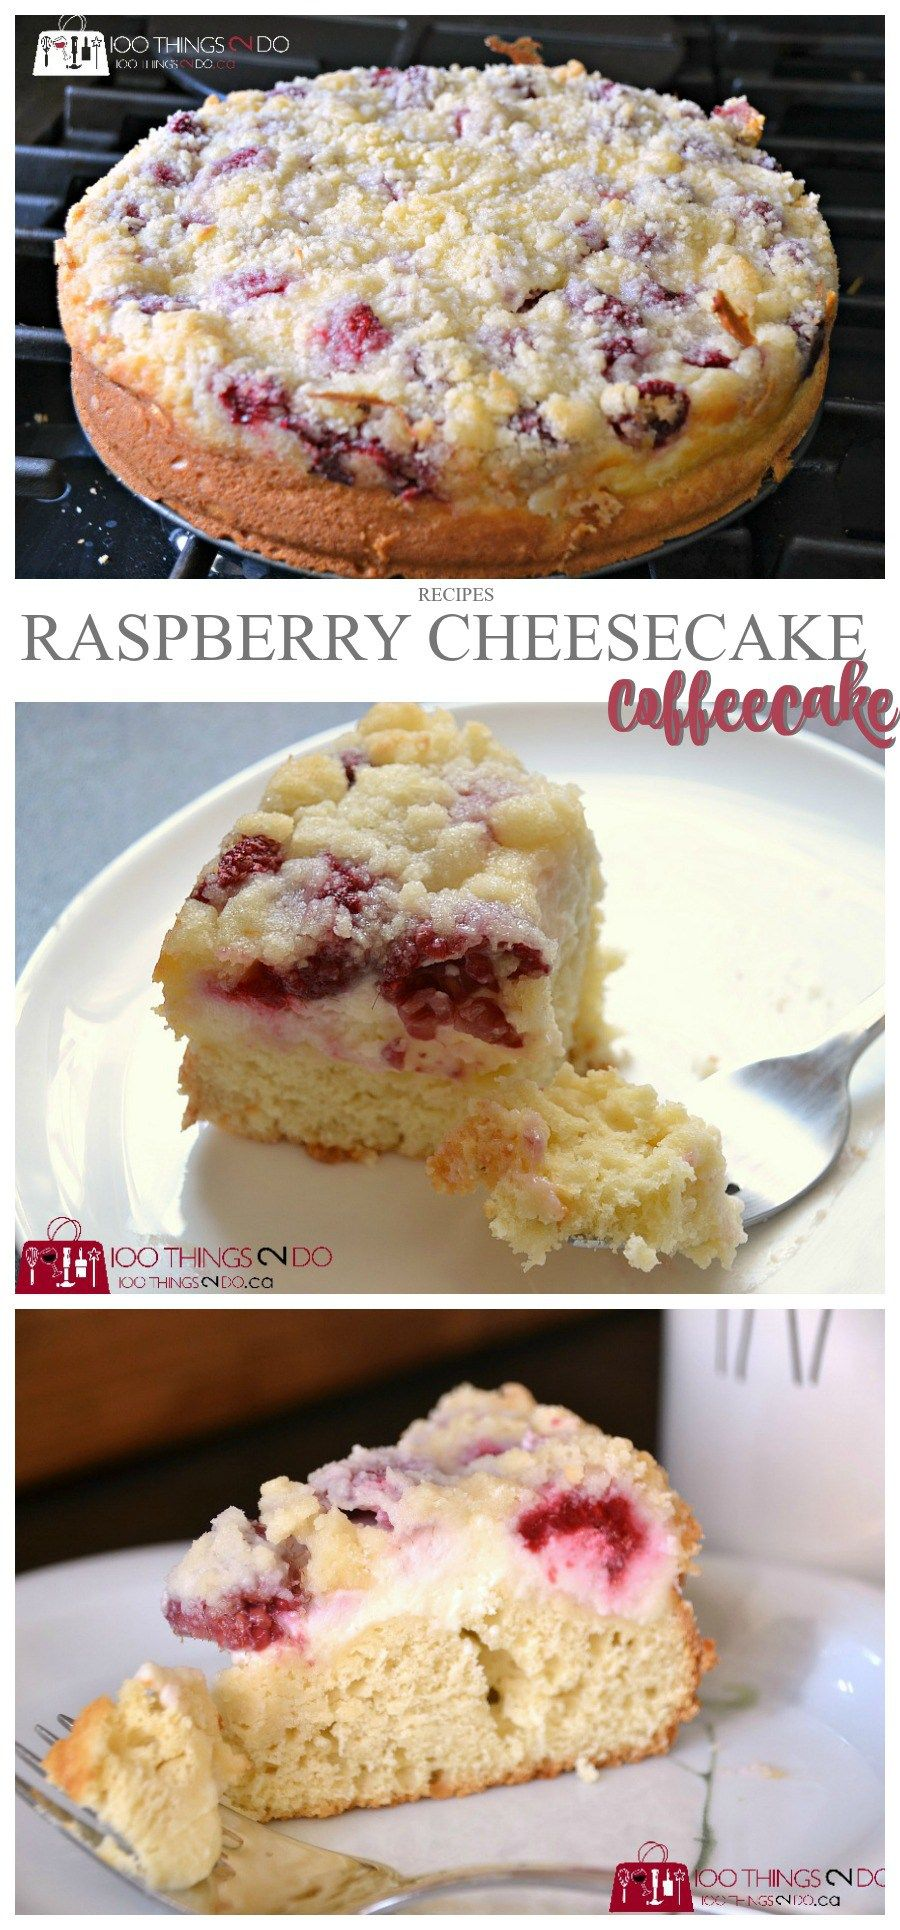 Sour Cream Coffee Cake Raspberry Cheesecake With Shortbread Streusel Raspberry Recipes Sour Cream Recipes Sour Cream Coffee Cake